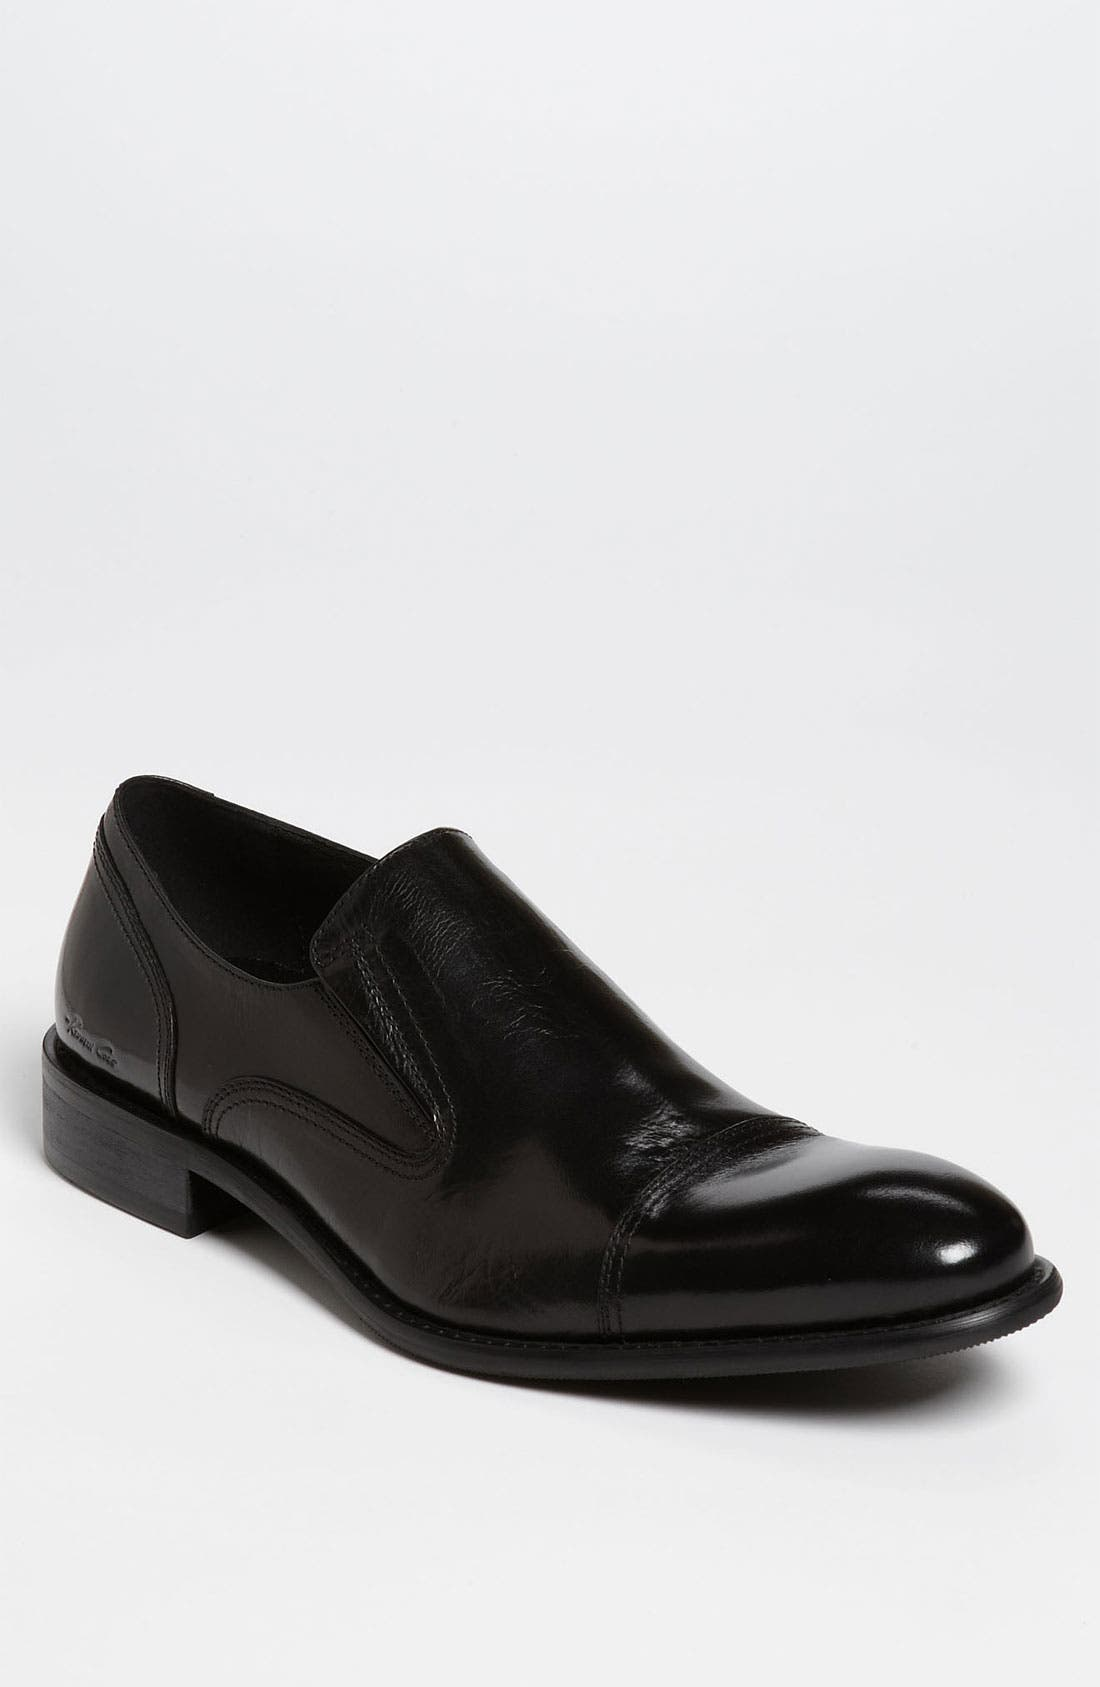 Main Image - Kenneth Cole New York 'Bump N Round' Venetian Loafer (Online Exclusive)